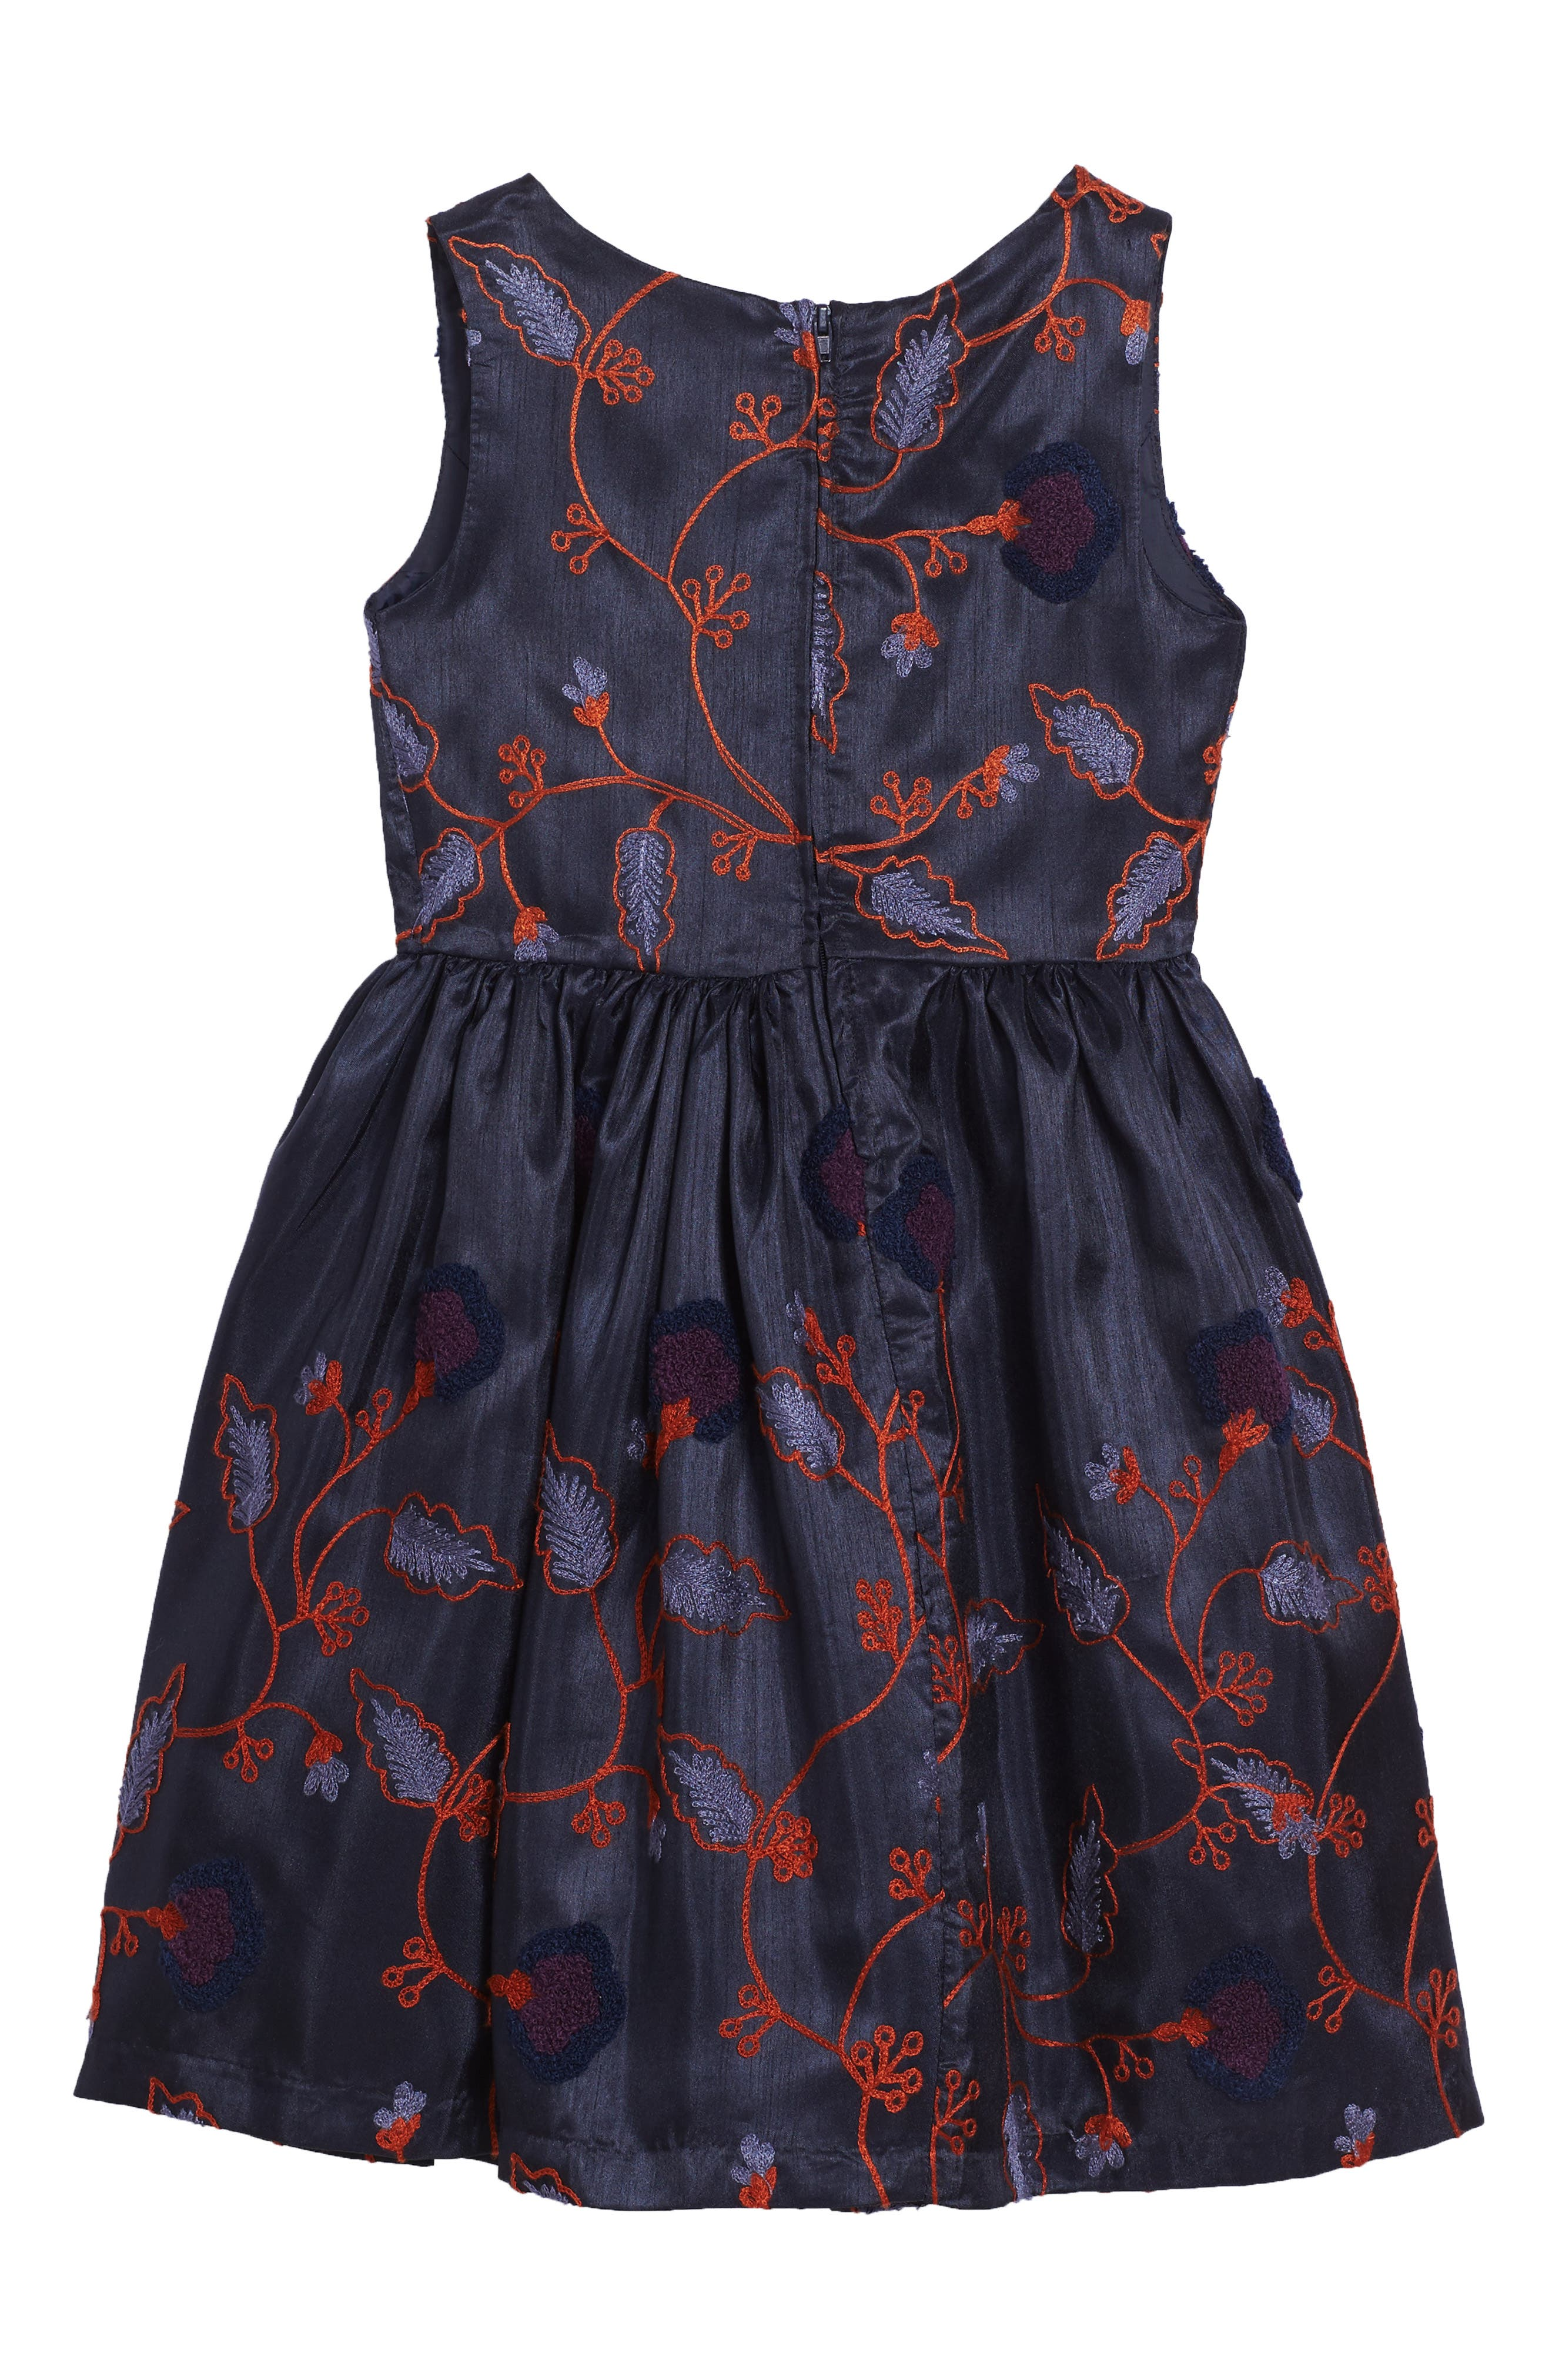 Embroidered Floral Dress,                             Alternate thumbnail 2, color,                             410